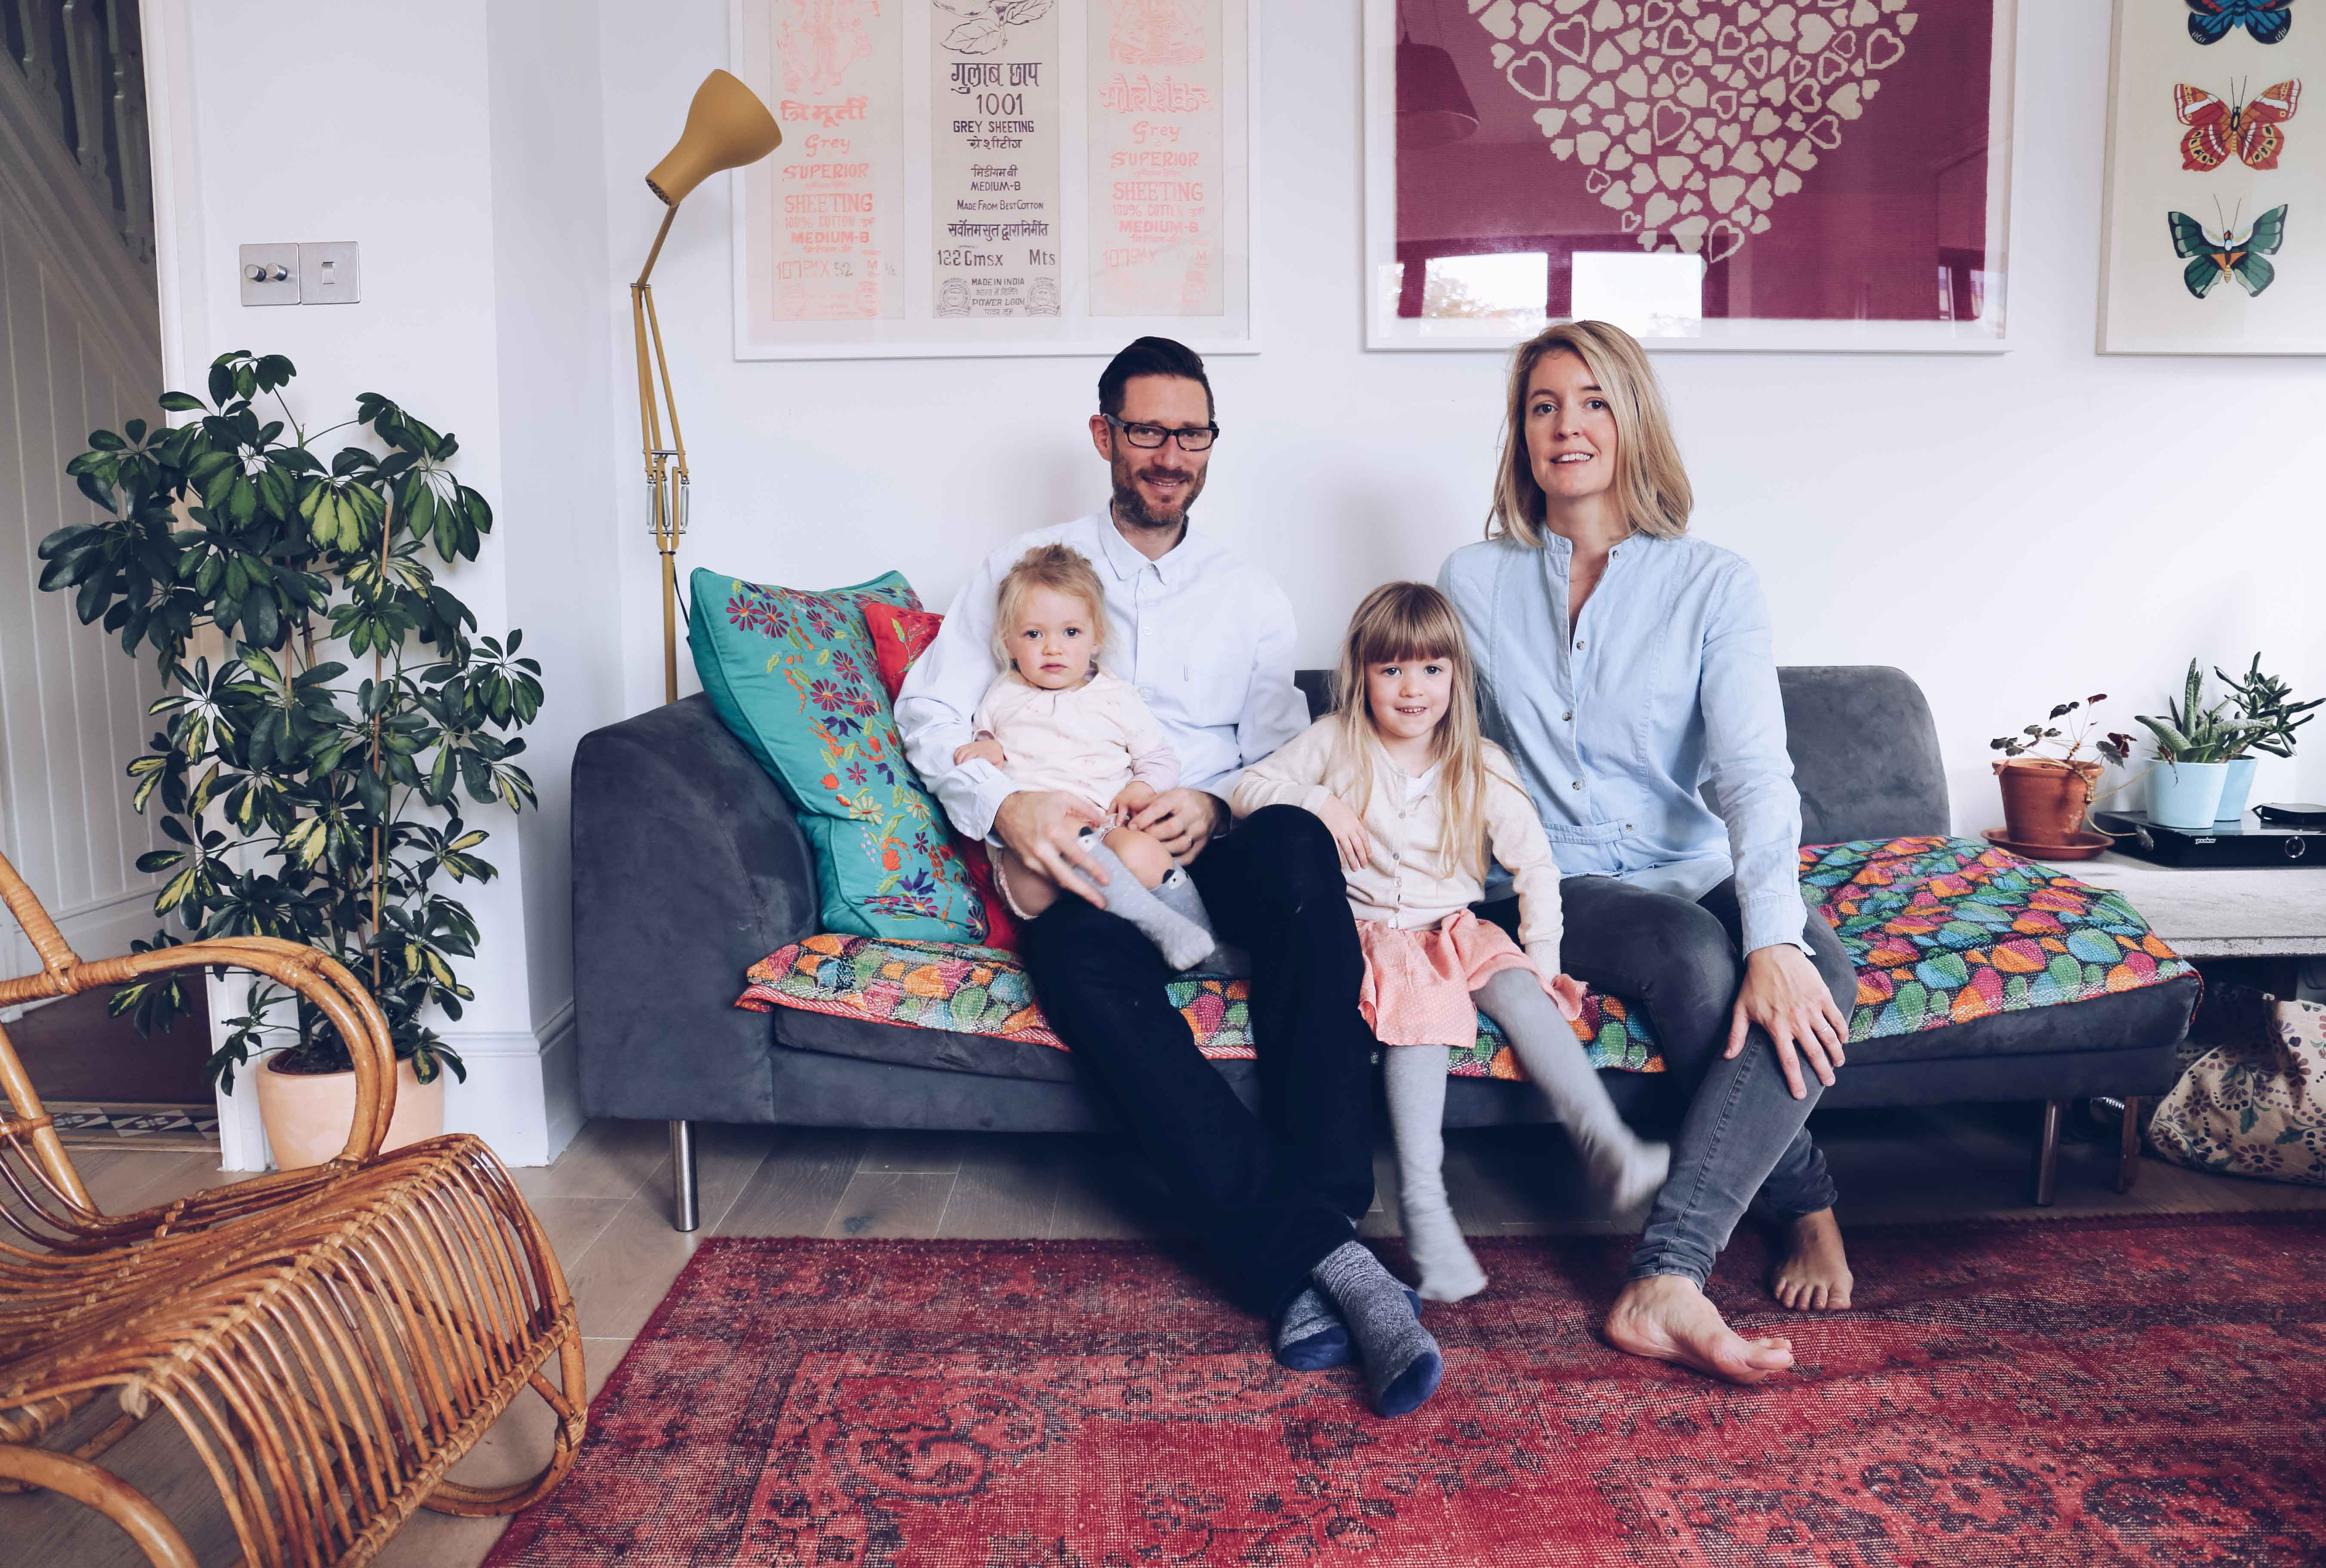 London designer Lulu Watts on moving to India, personal rediscovery and family life